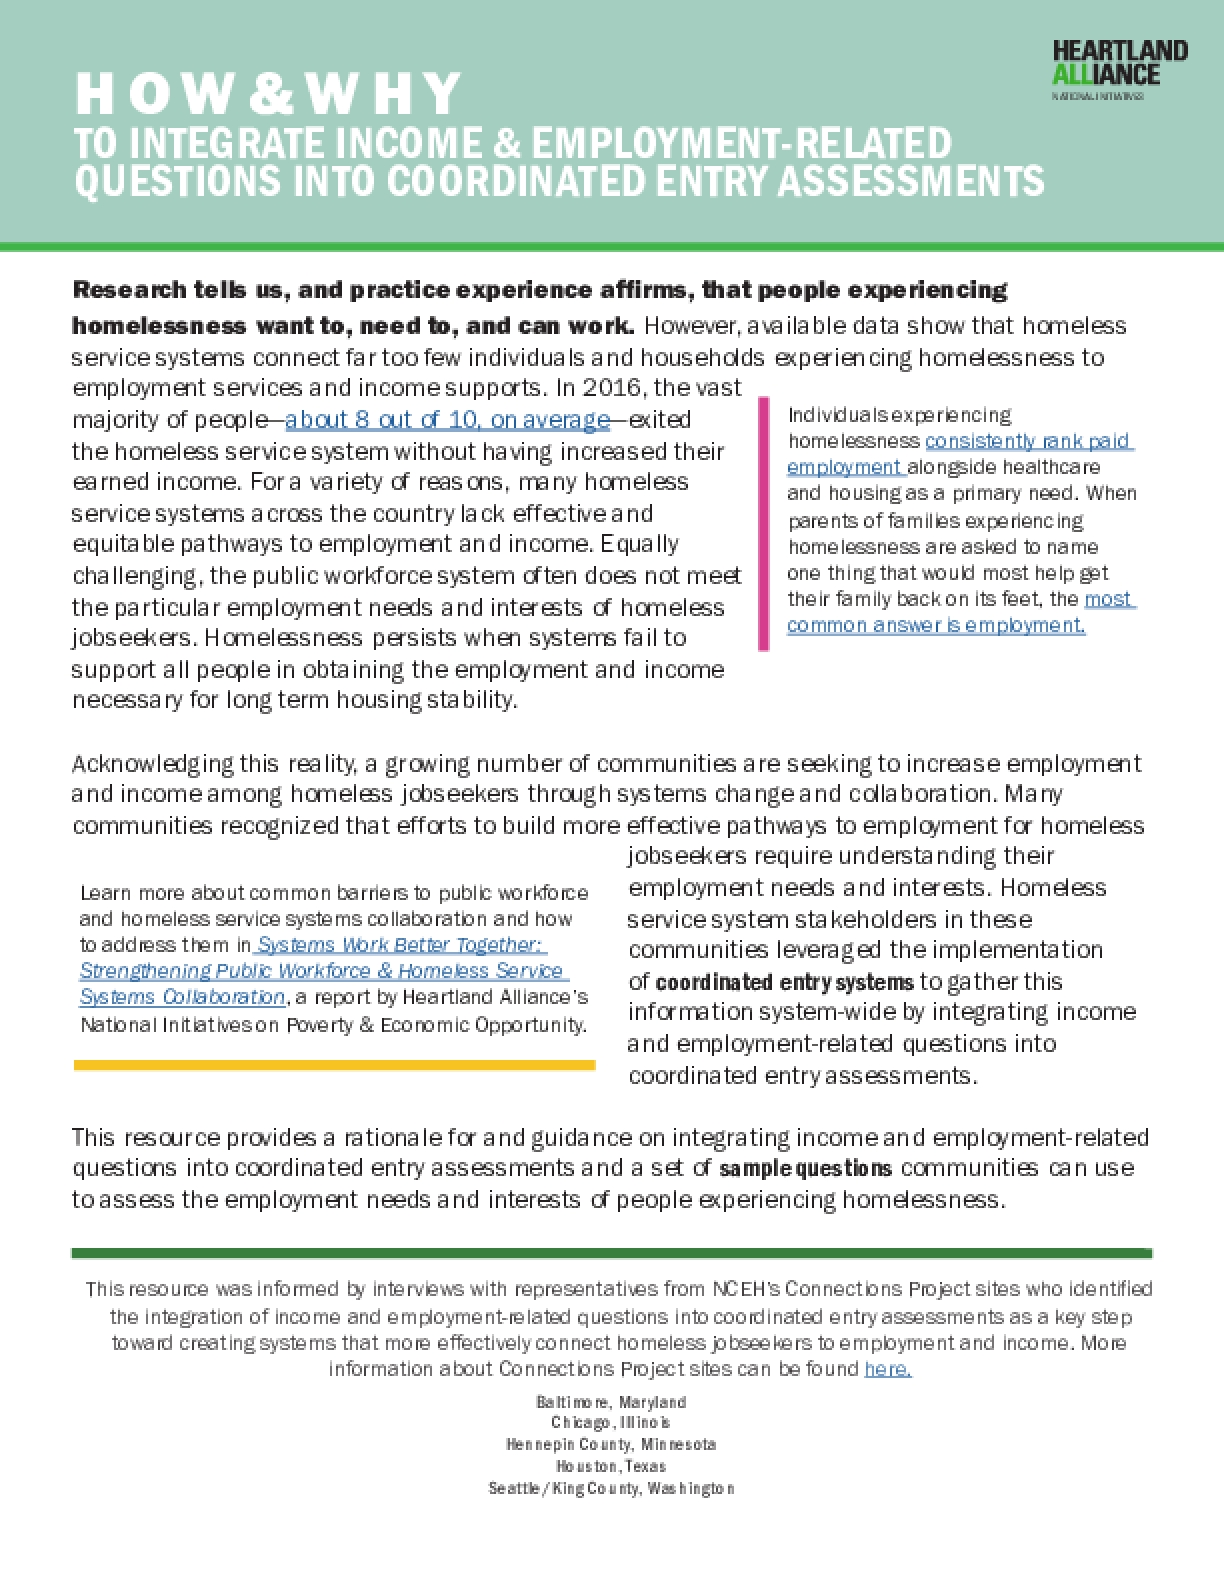 How and Why to Integrate Income & Employment-Related Questions Into Coordinated Entry Assessments